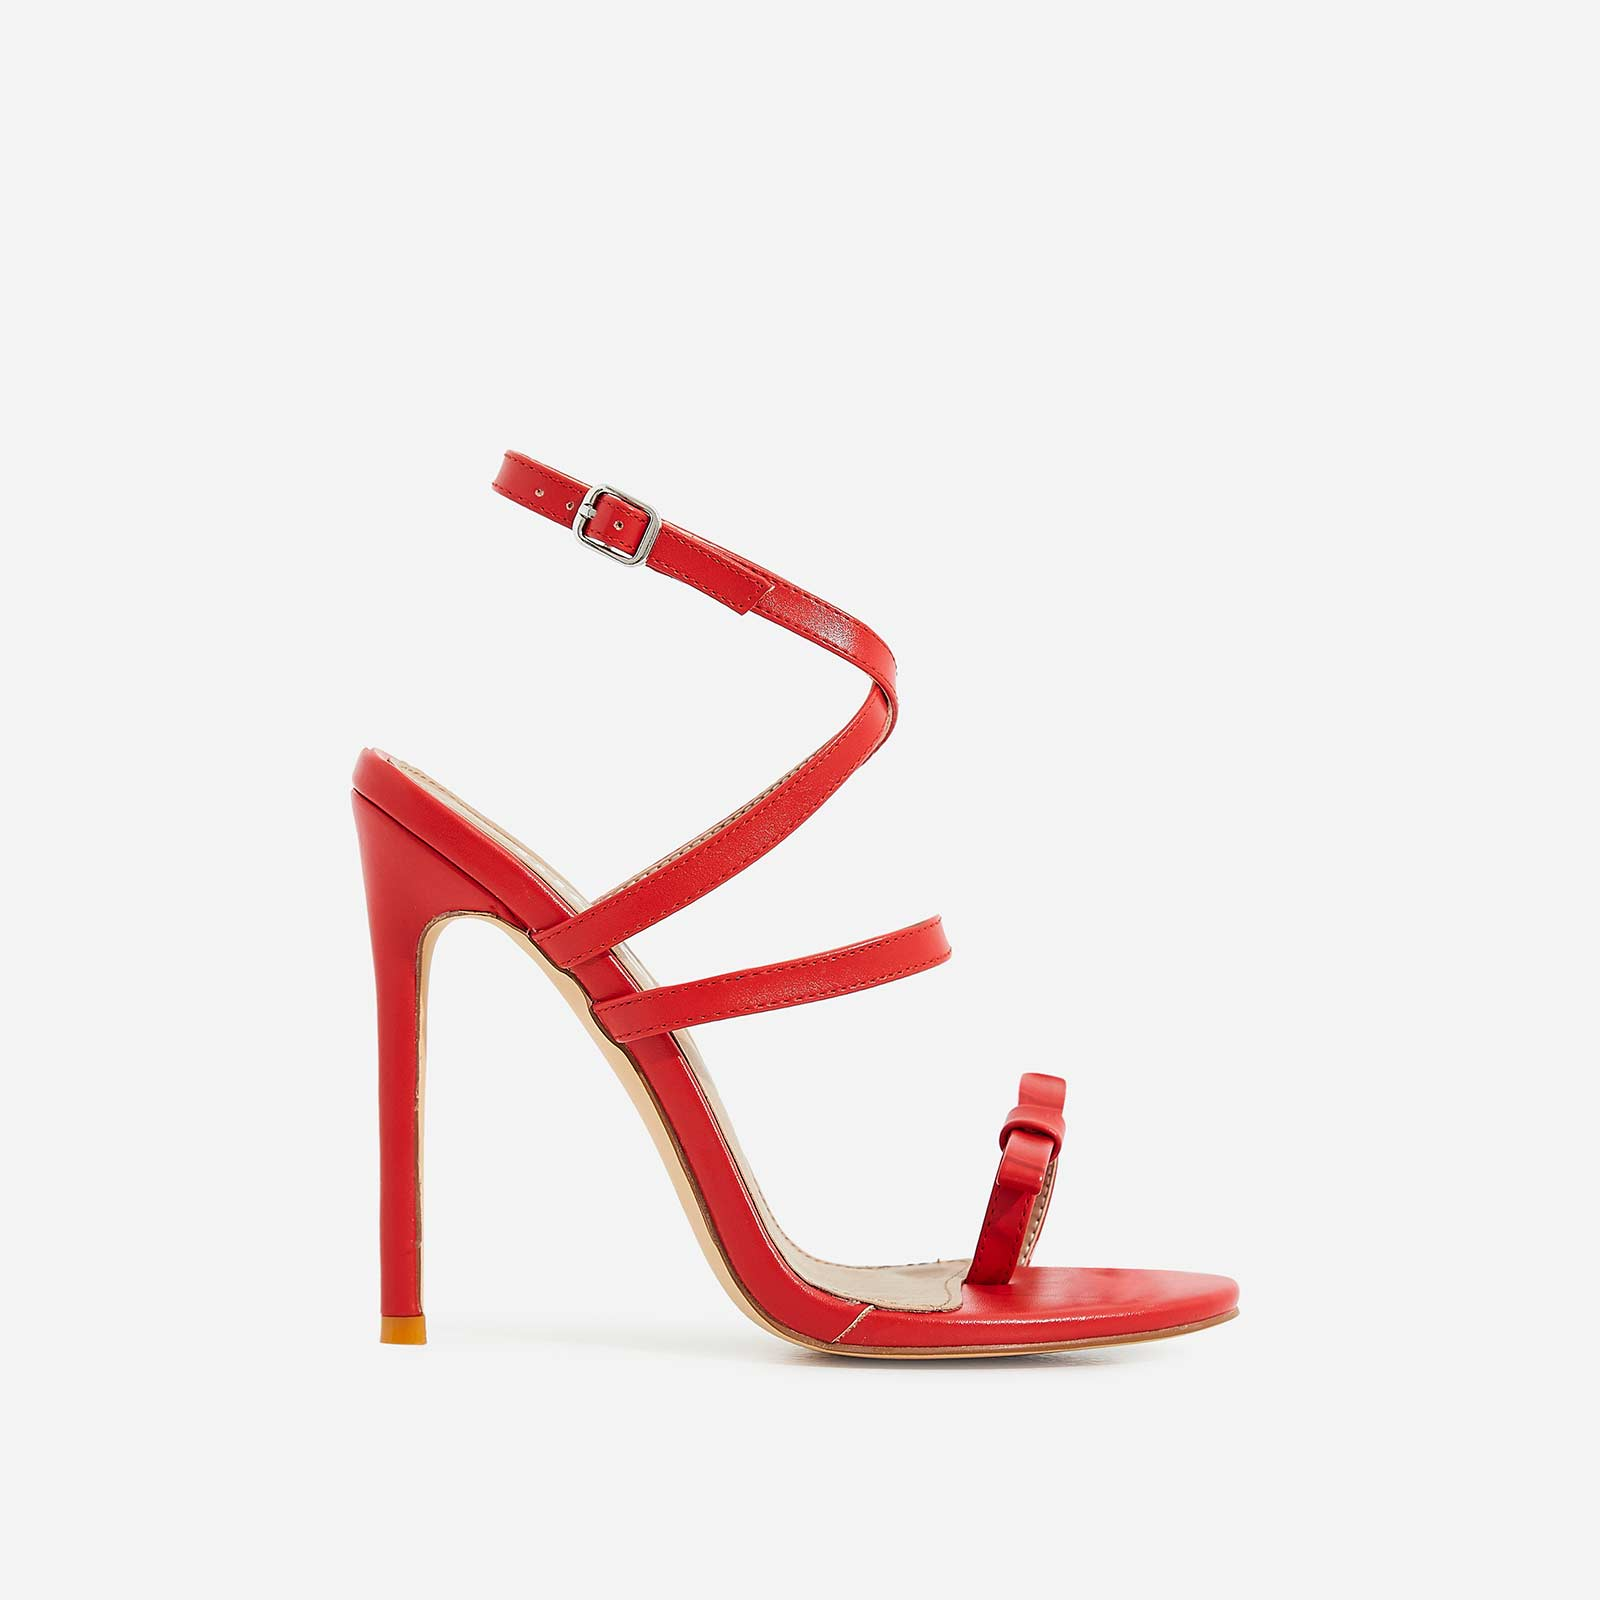 Samira Bow Detail Barely There Heel In Red Faux Leather